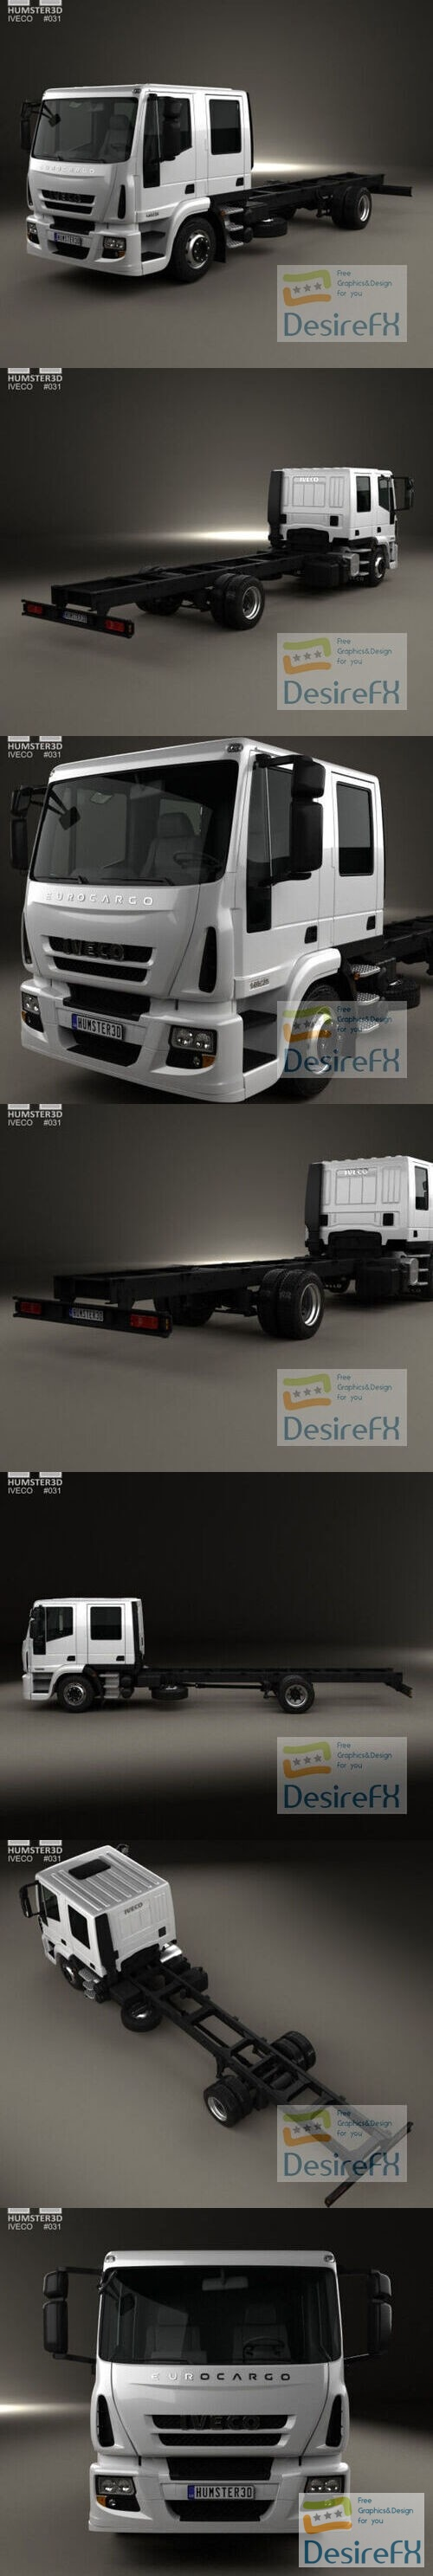 Iveco EuroCargo Double Cab Chassis Truck 2008 3D Model